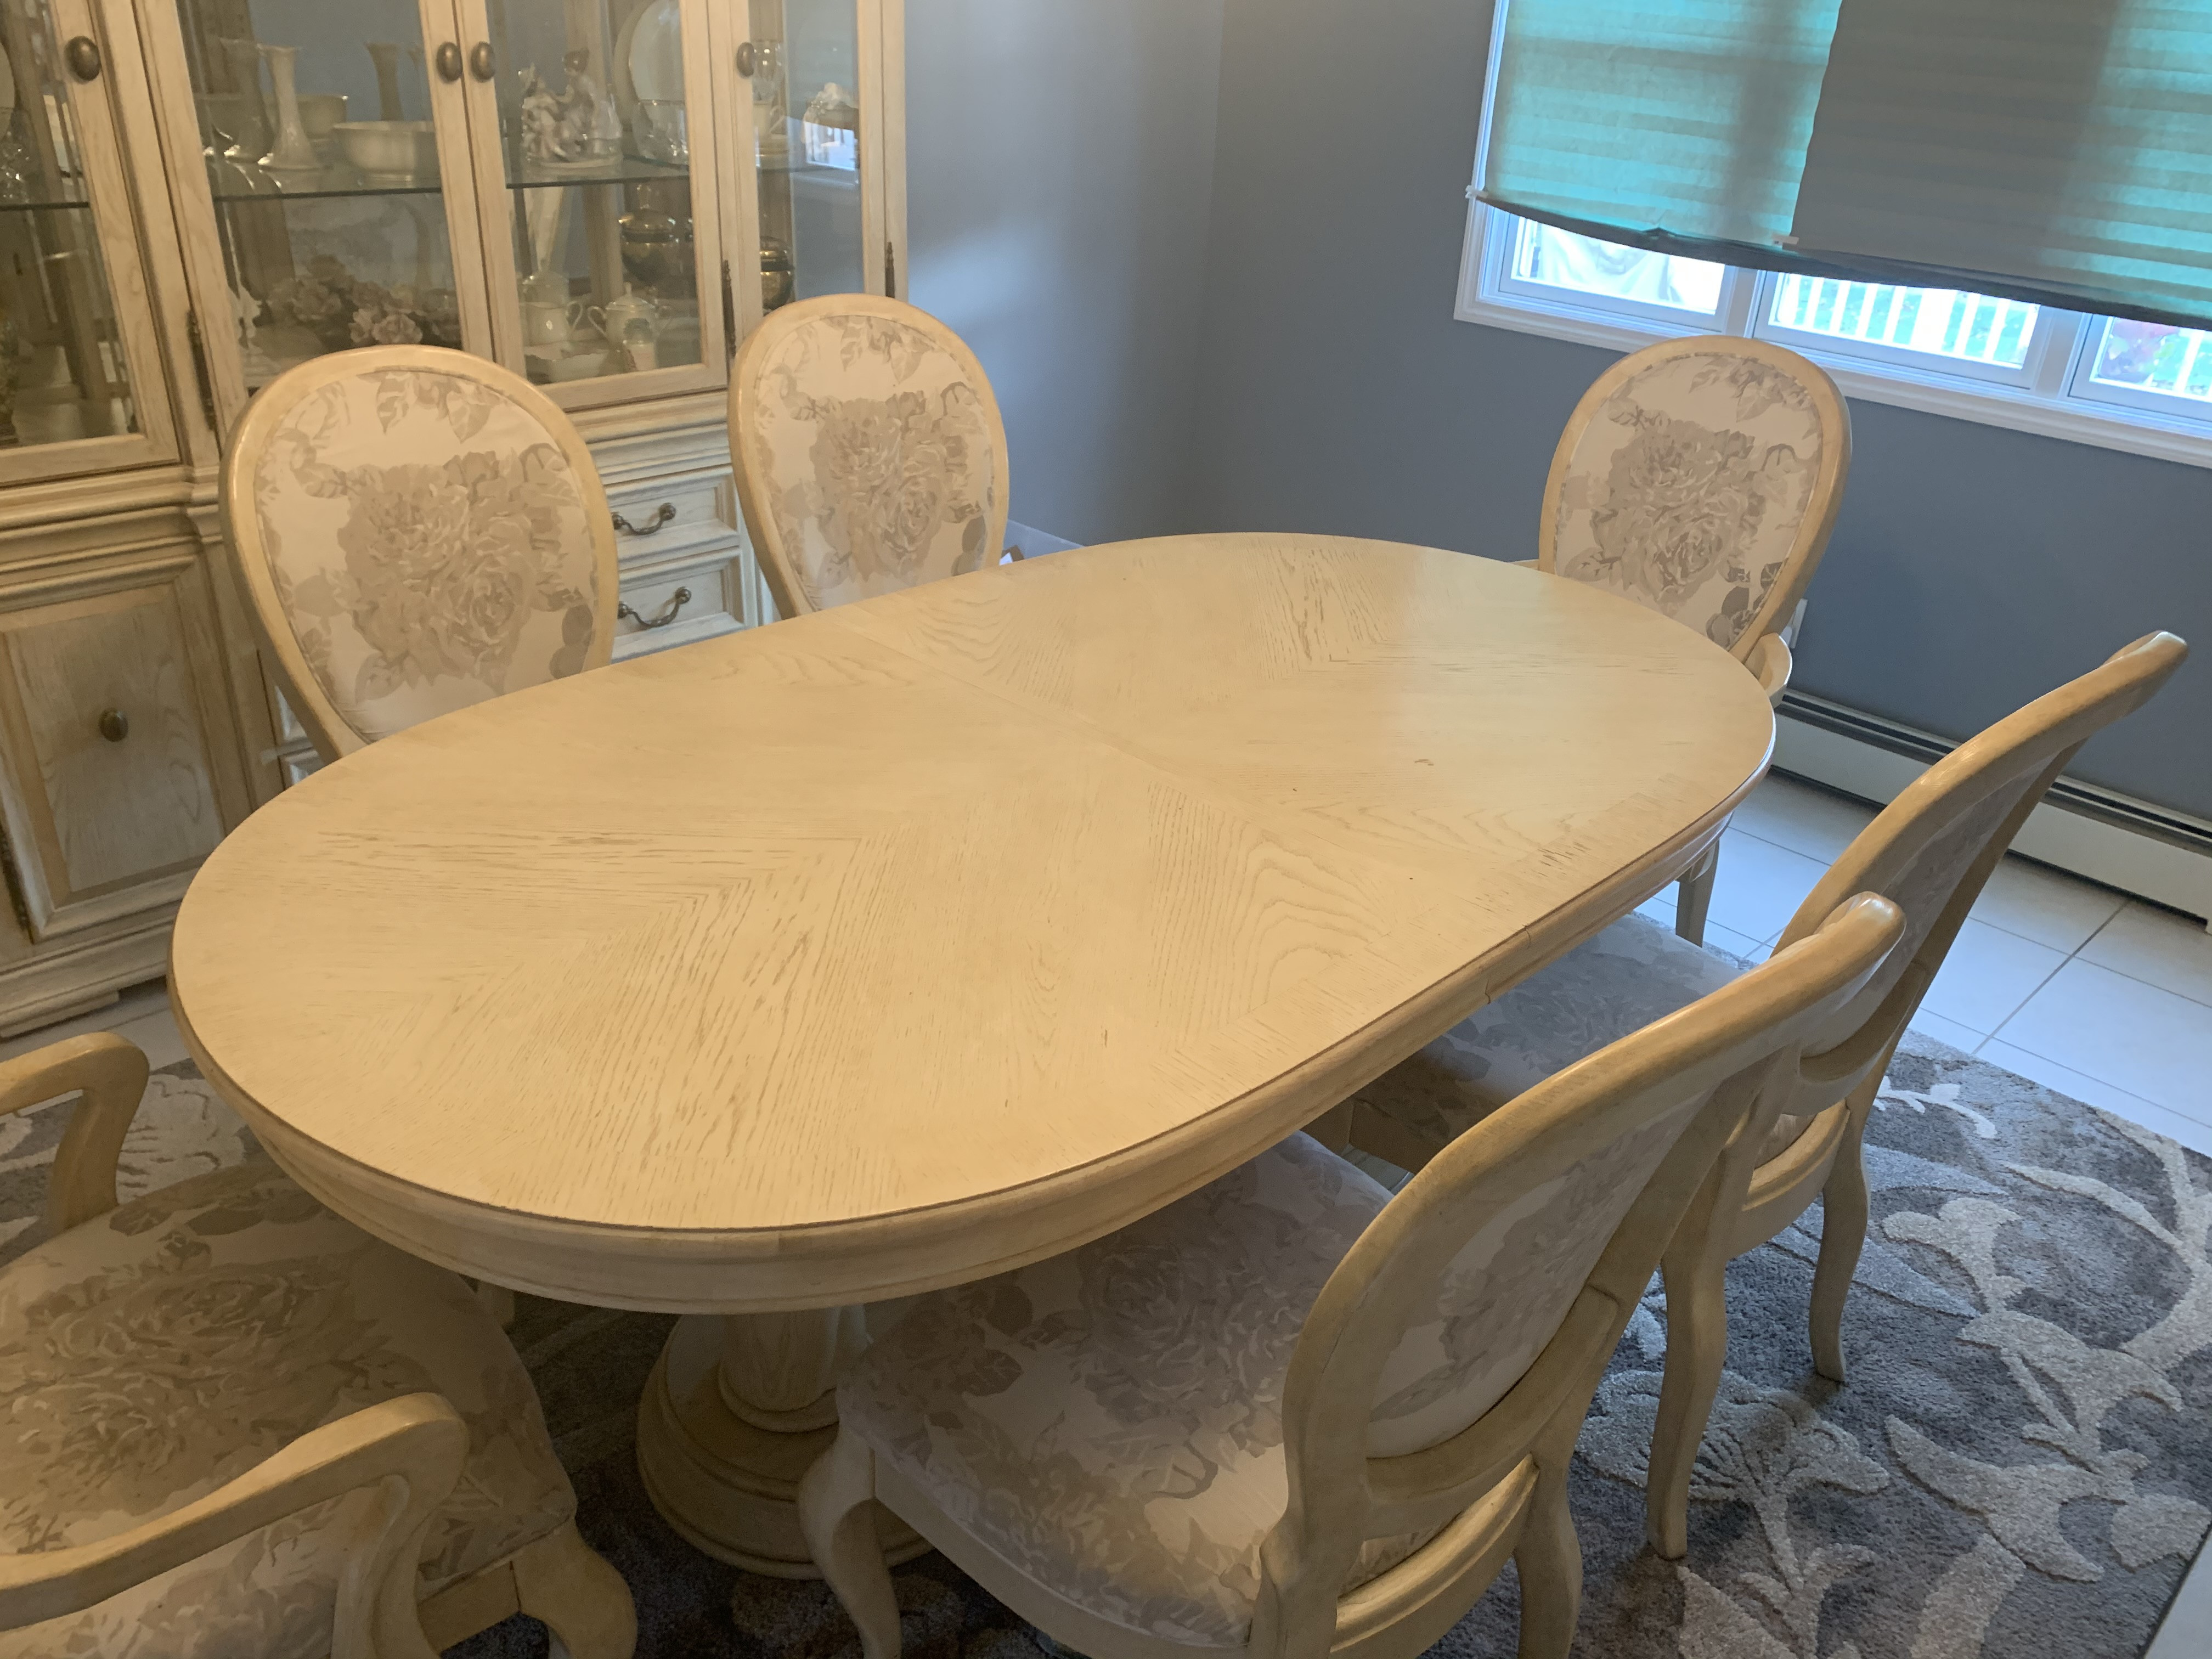 Bernhardt Dining Table w/ 6 Chairs